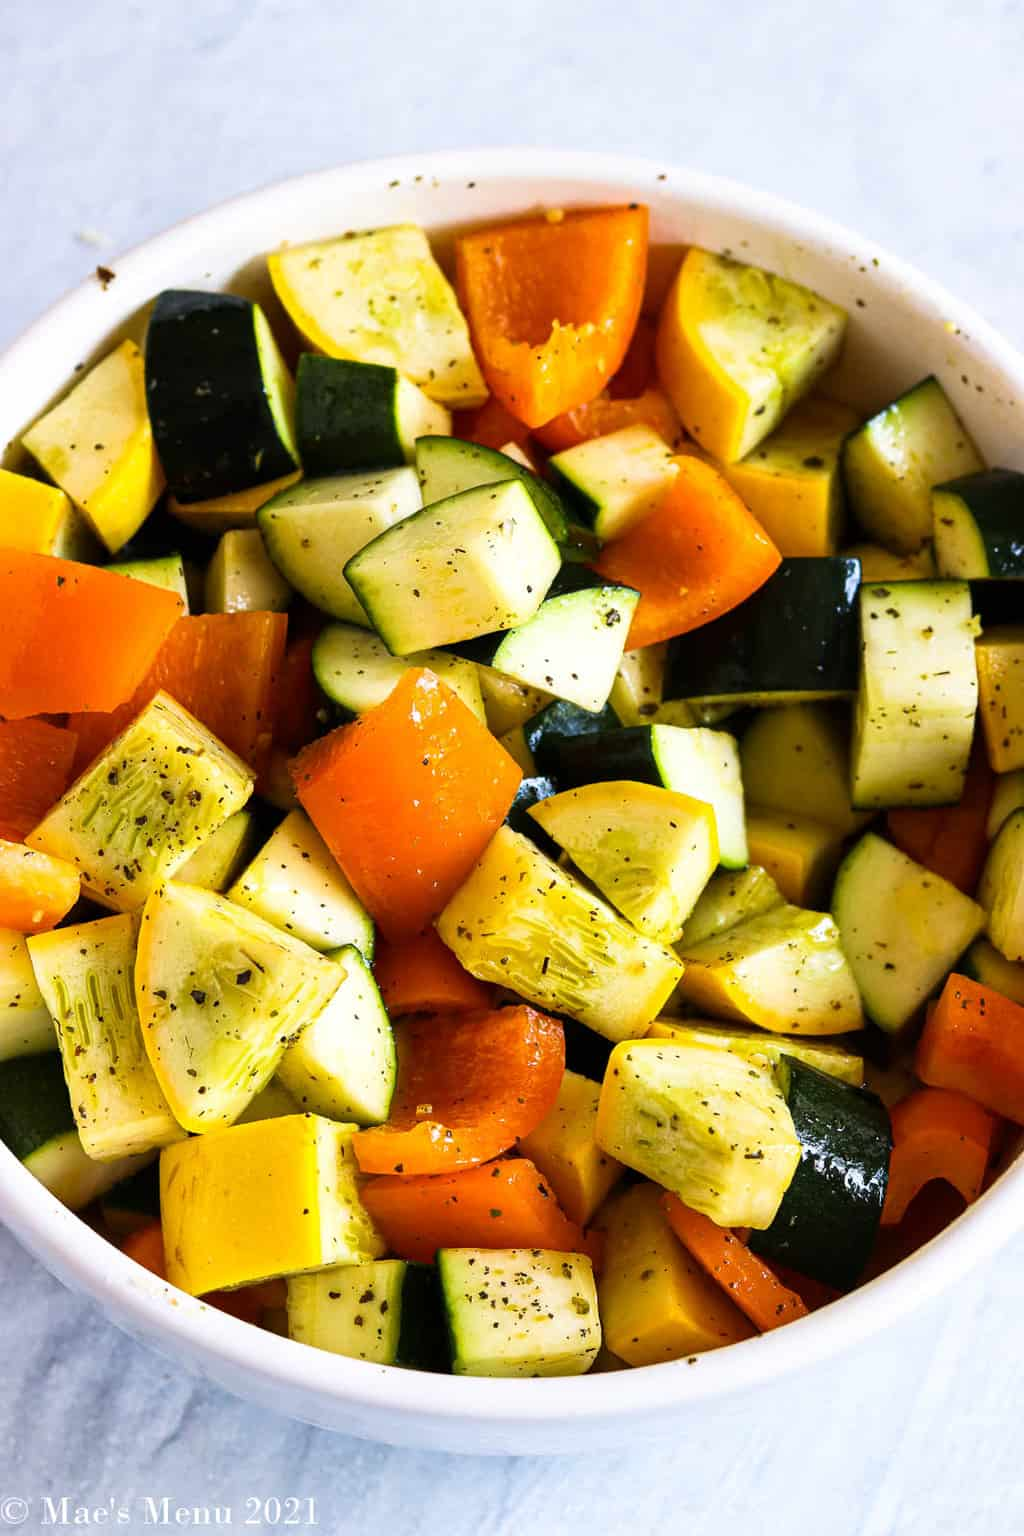 An overhead shot of a large white mixing bowl with squash and peppers coated in olive oil and seasonings